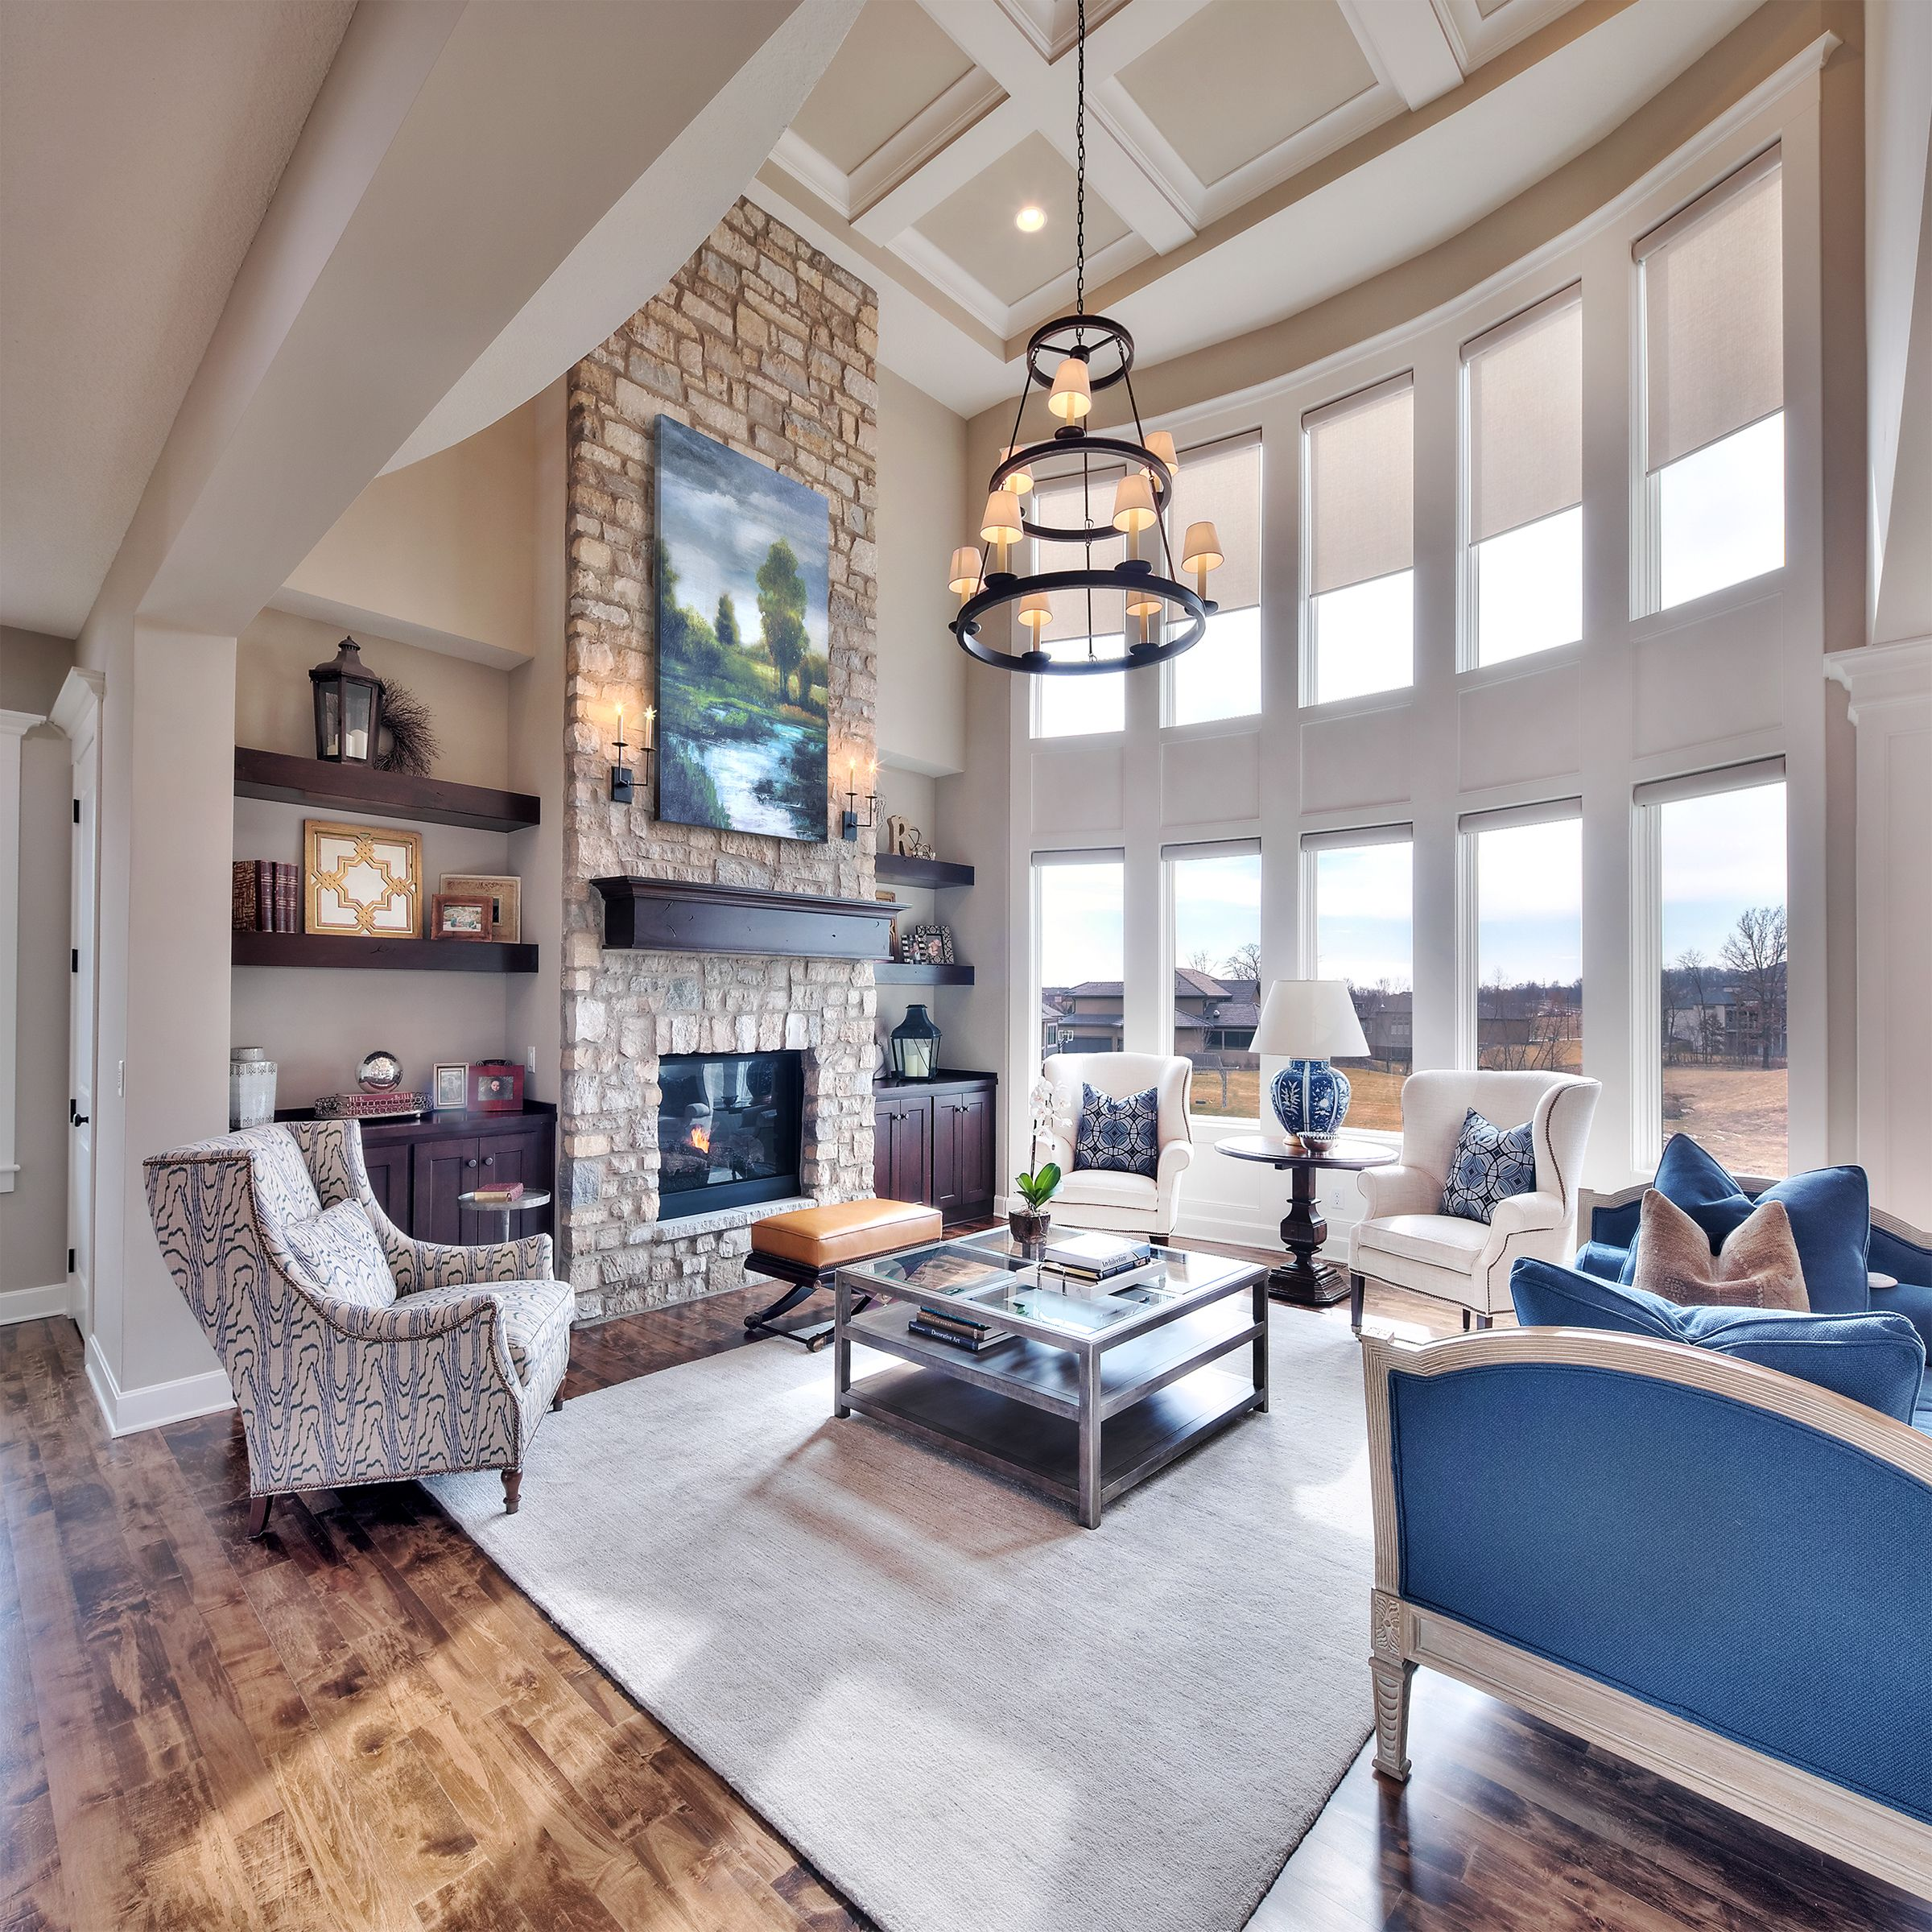 Great room  floor to ceiling stone fireplace  large windows to ceilings for  a lotGreat room  floor to ceiling stone fireplace  large windows to  . Great Room With Fireplace. Home Design Ideas